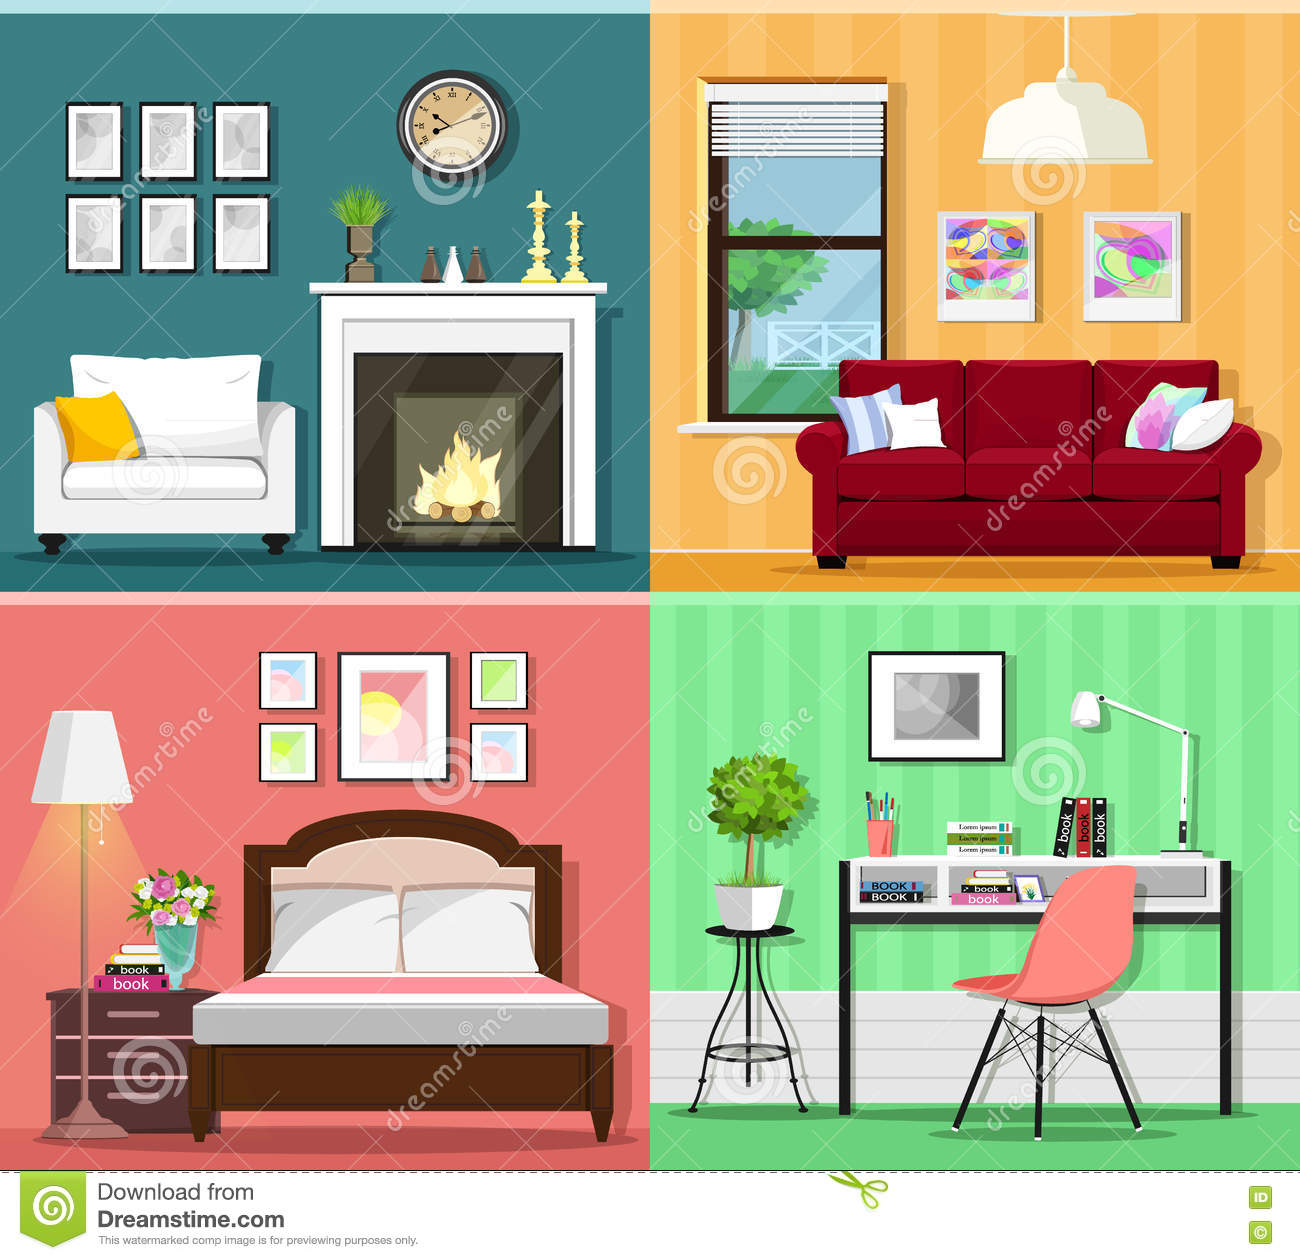 Living Room Clip Art: Set Of Colorful Graphic Room Interiors With Furniture